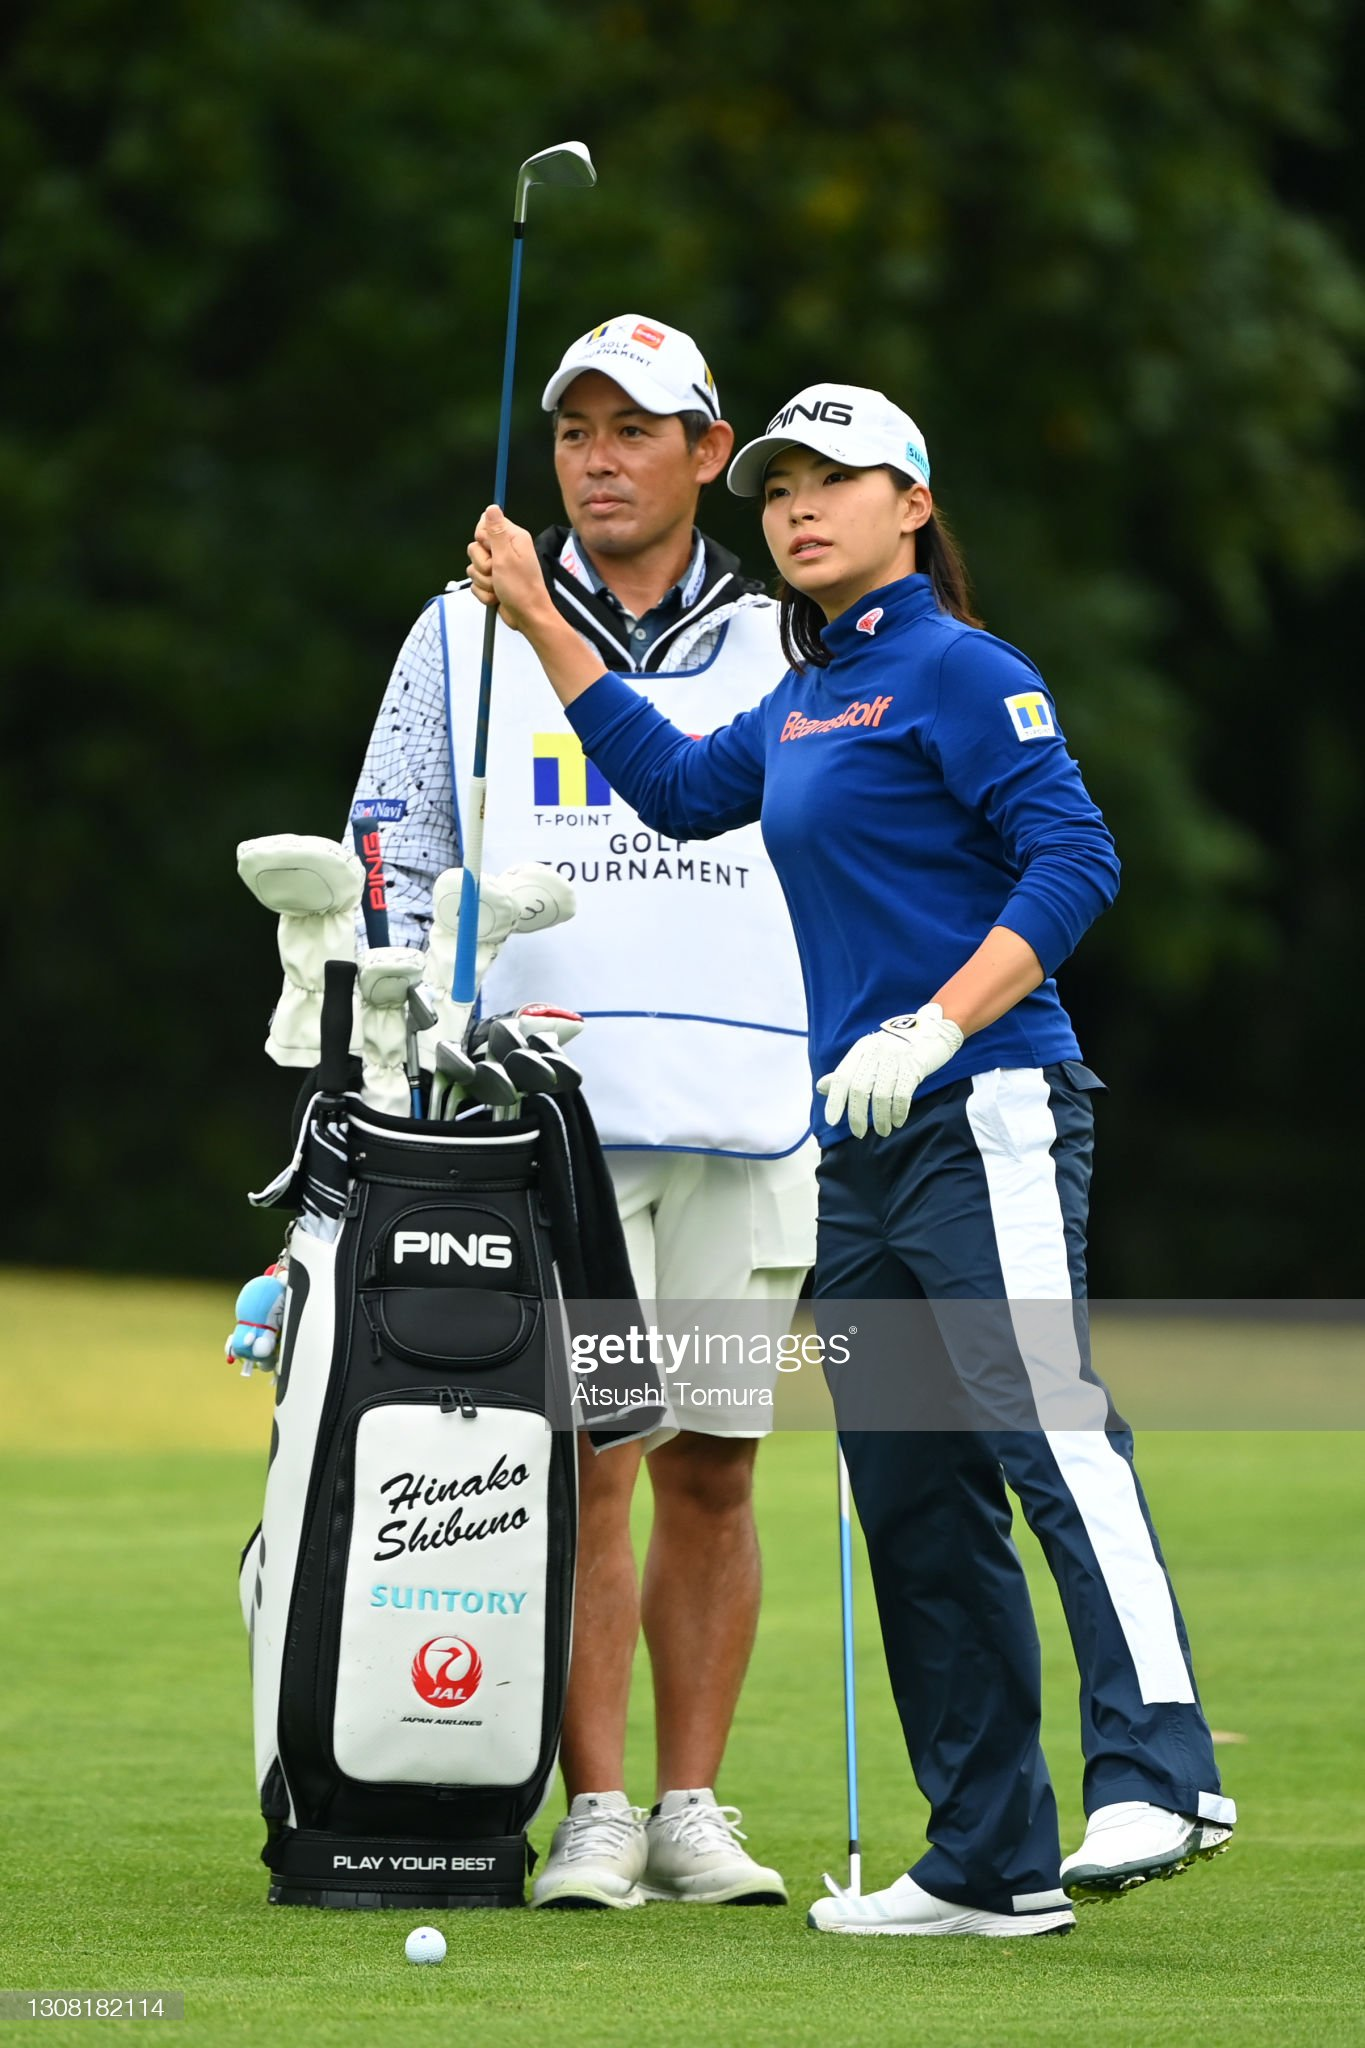 https://media.gettyimages.com/photos/hinako-shibuno-of-japan-picks-an-iron-up-from-her-caddie-bag-before-picture-id1308182114?s=2048x2048